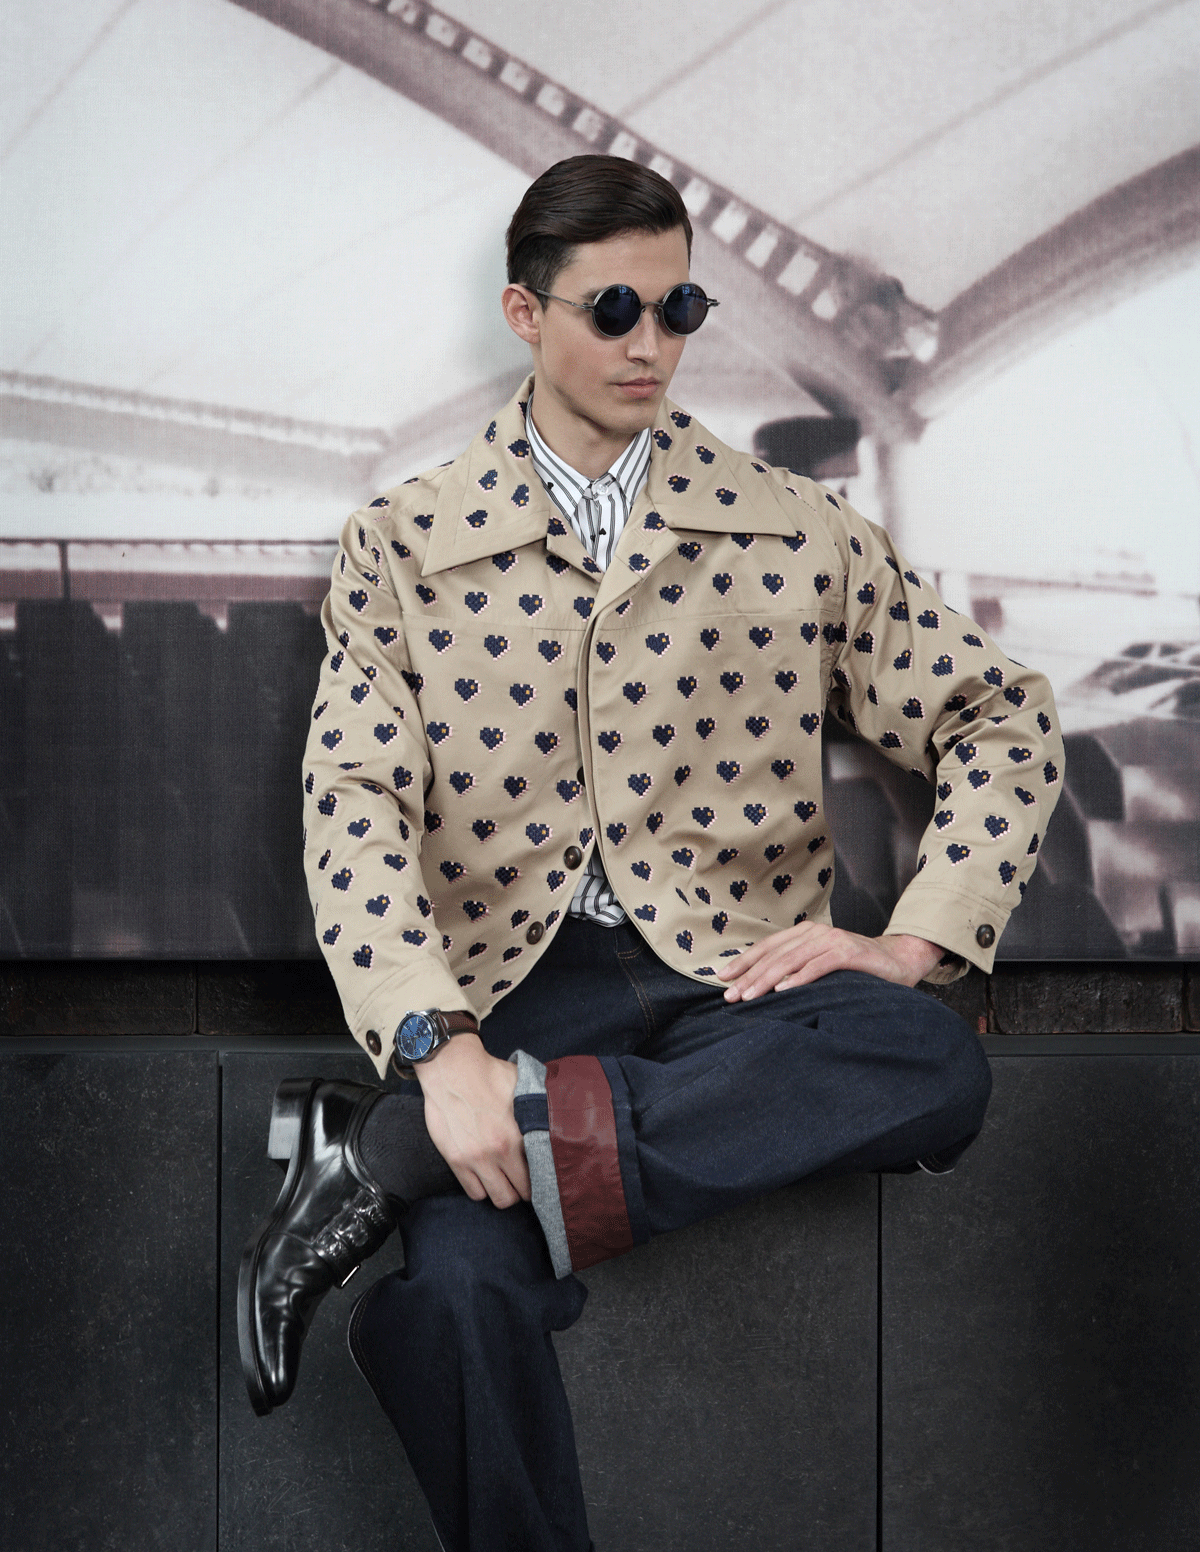 clothes : Everyday Karmakamet / sunglasses : TAVAT / shoes : GIVENCHY  watch : Hamilton Spirit of Liberty